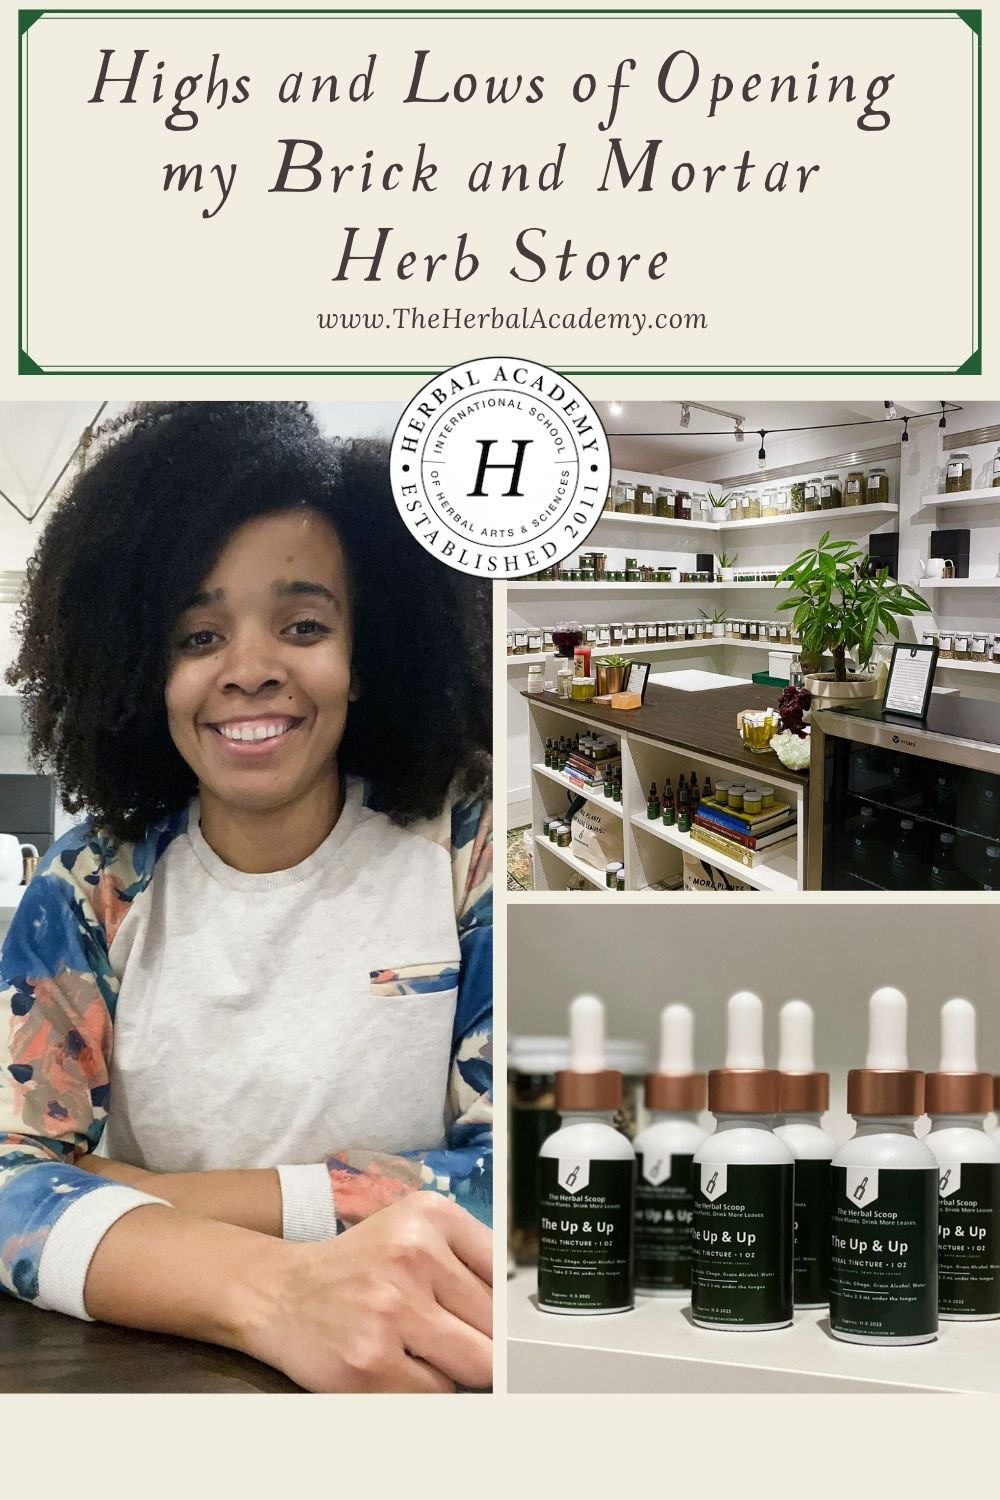 Highs and Lows of Opening by Brick and Mortar Herb Store: Pinterest Graphic